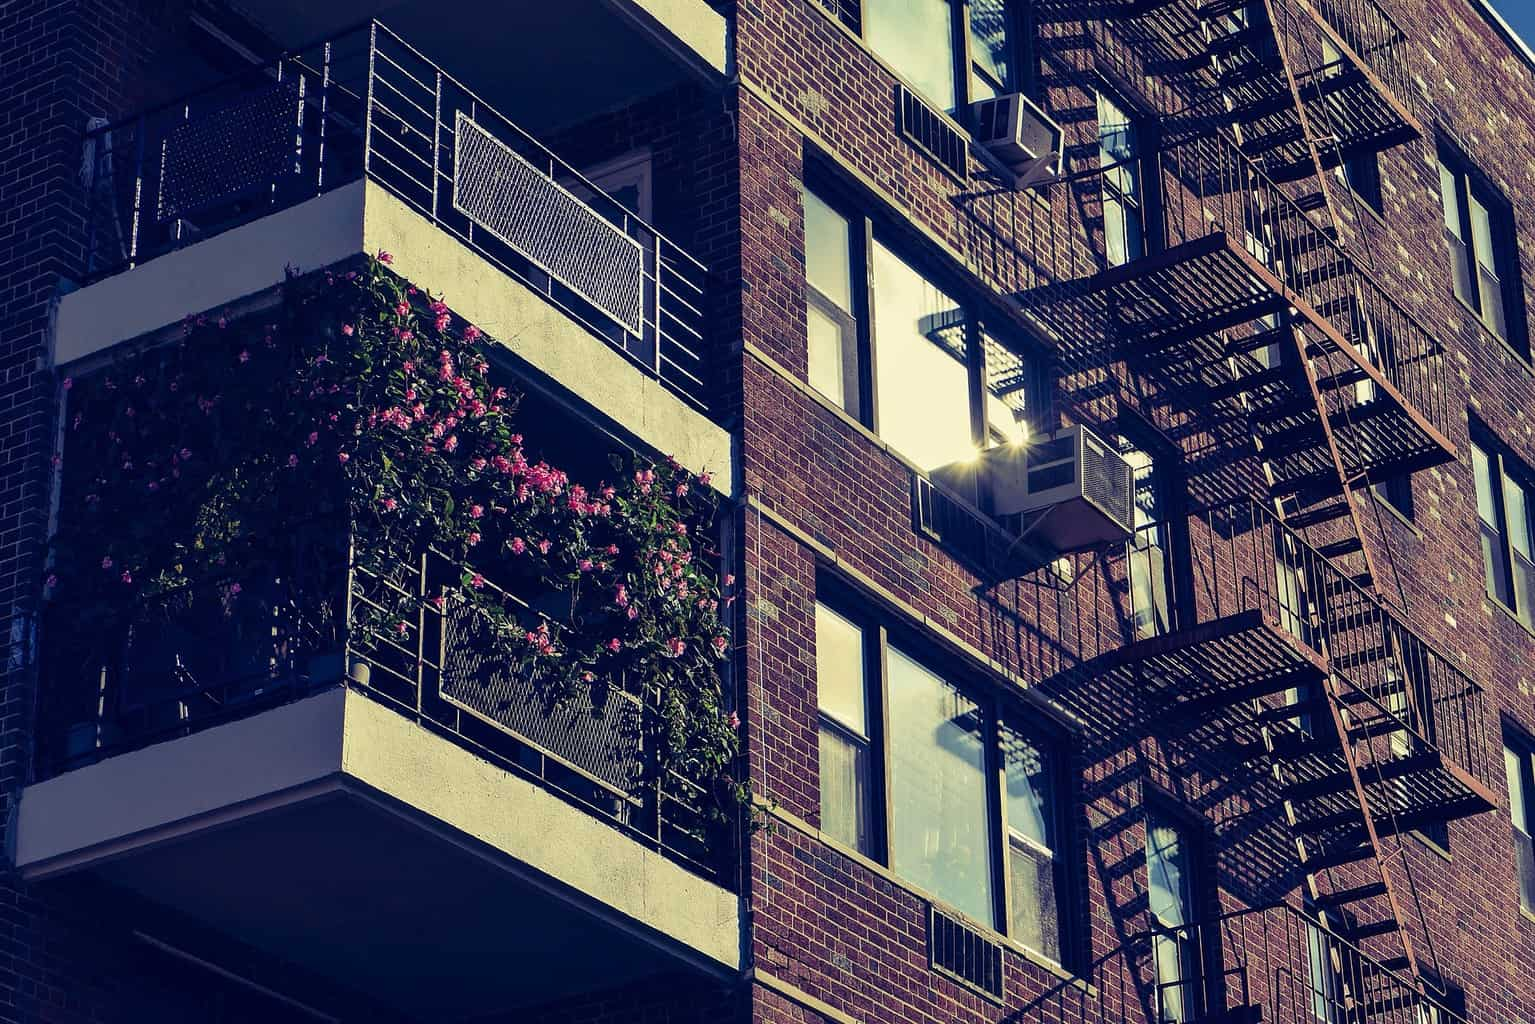 Exterior of an apartment building with window air conditioners